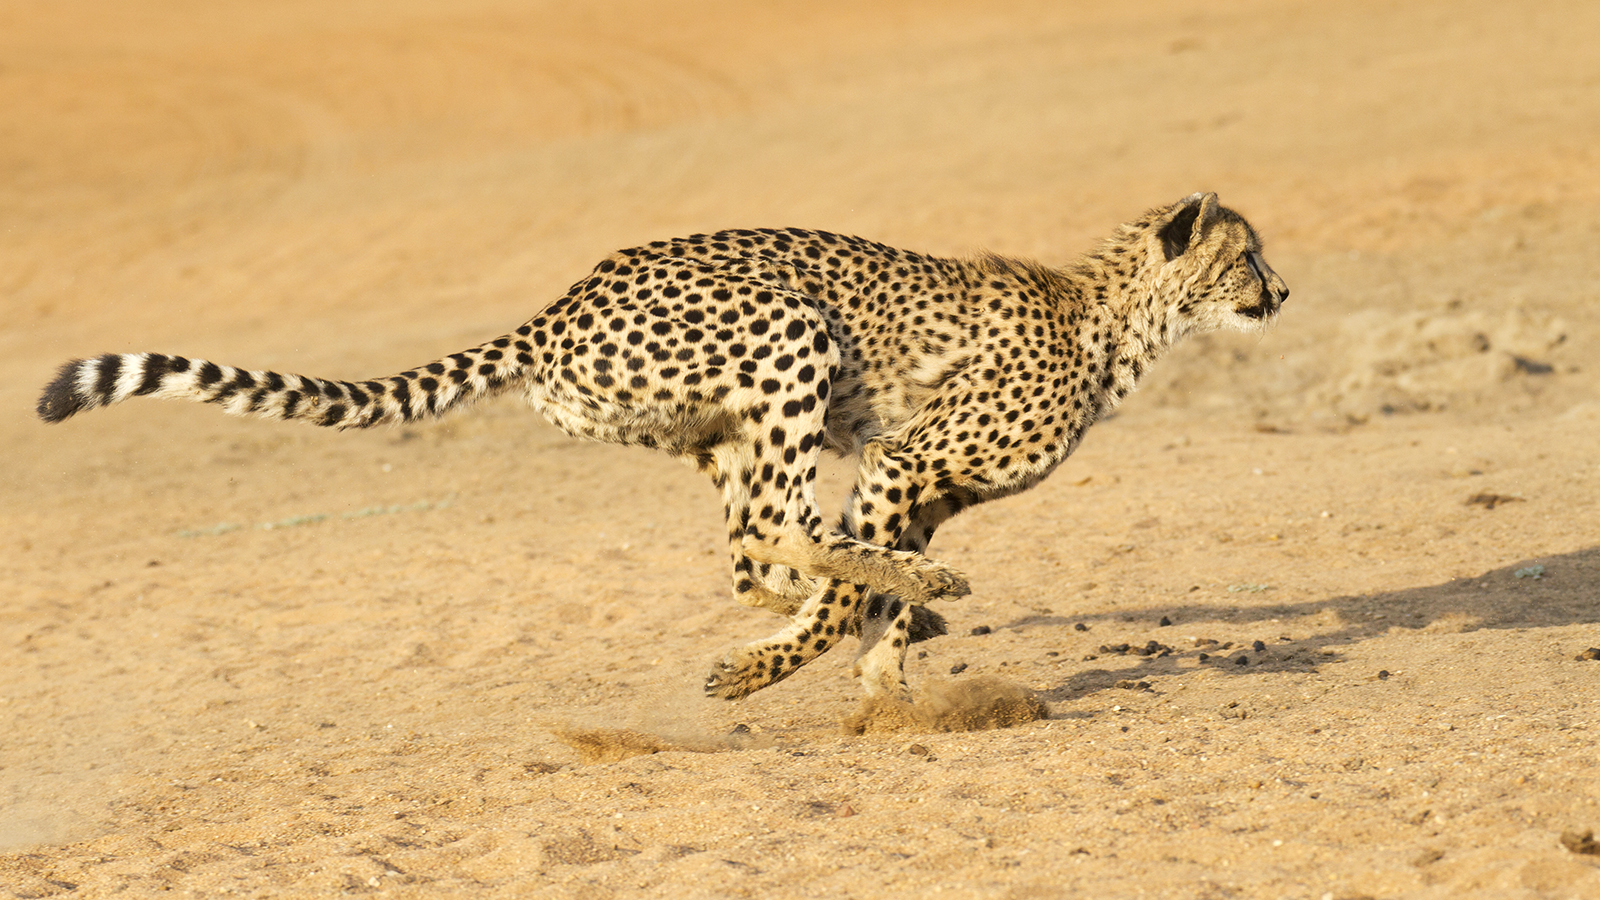 Cheetah Ready to Attack